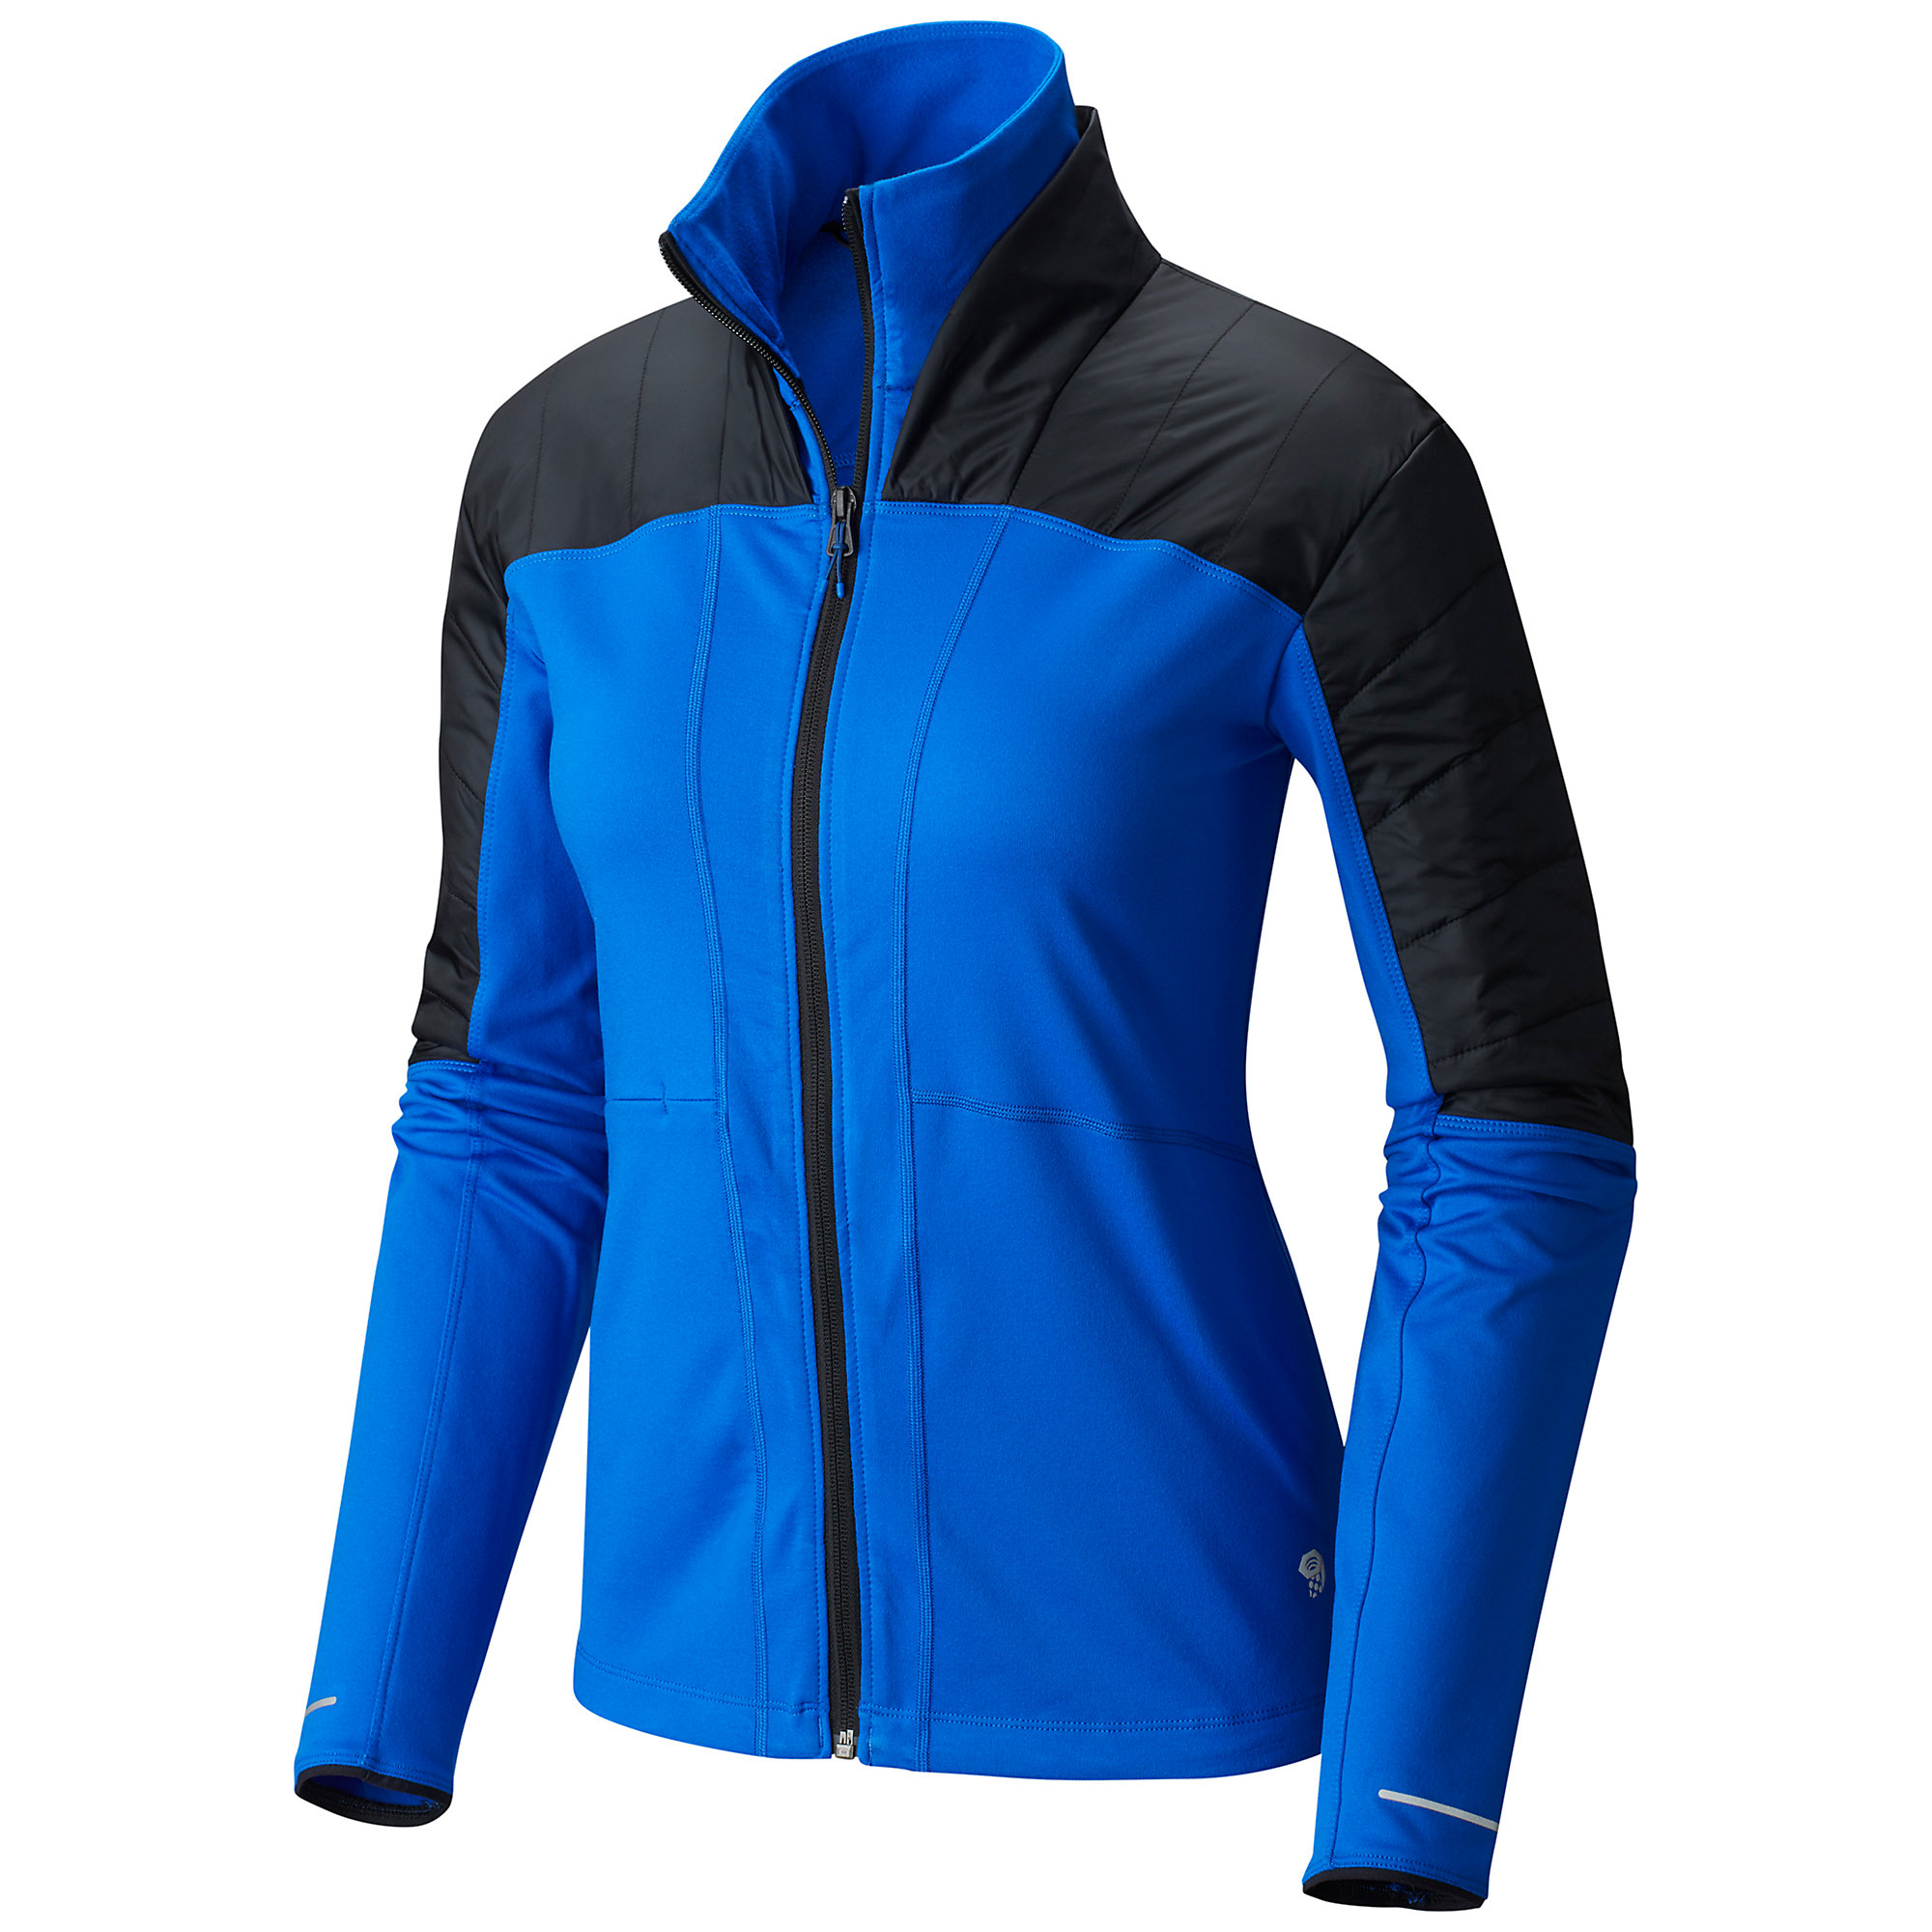 Mountain Hardwear 32 Degree Insulated Jacket